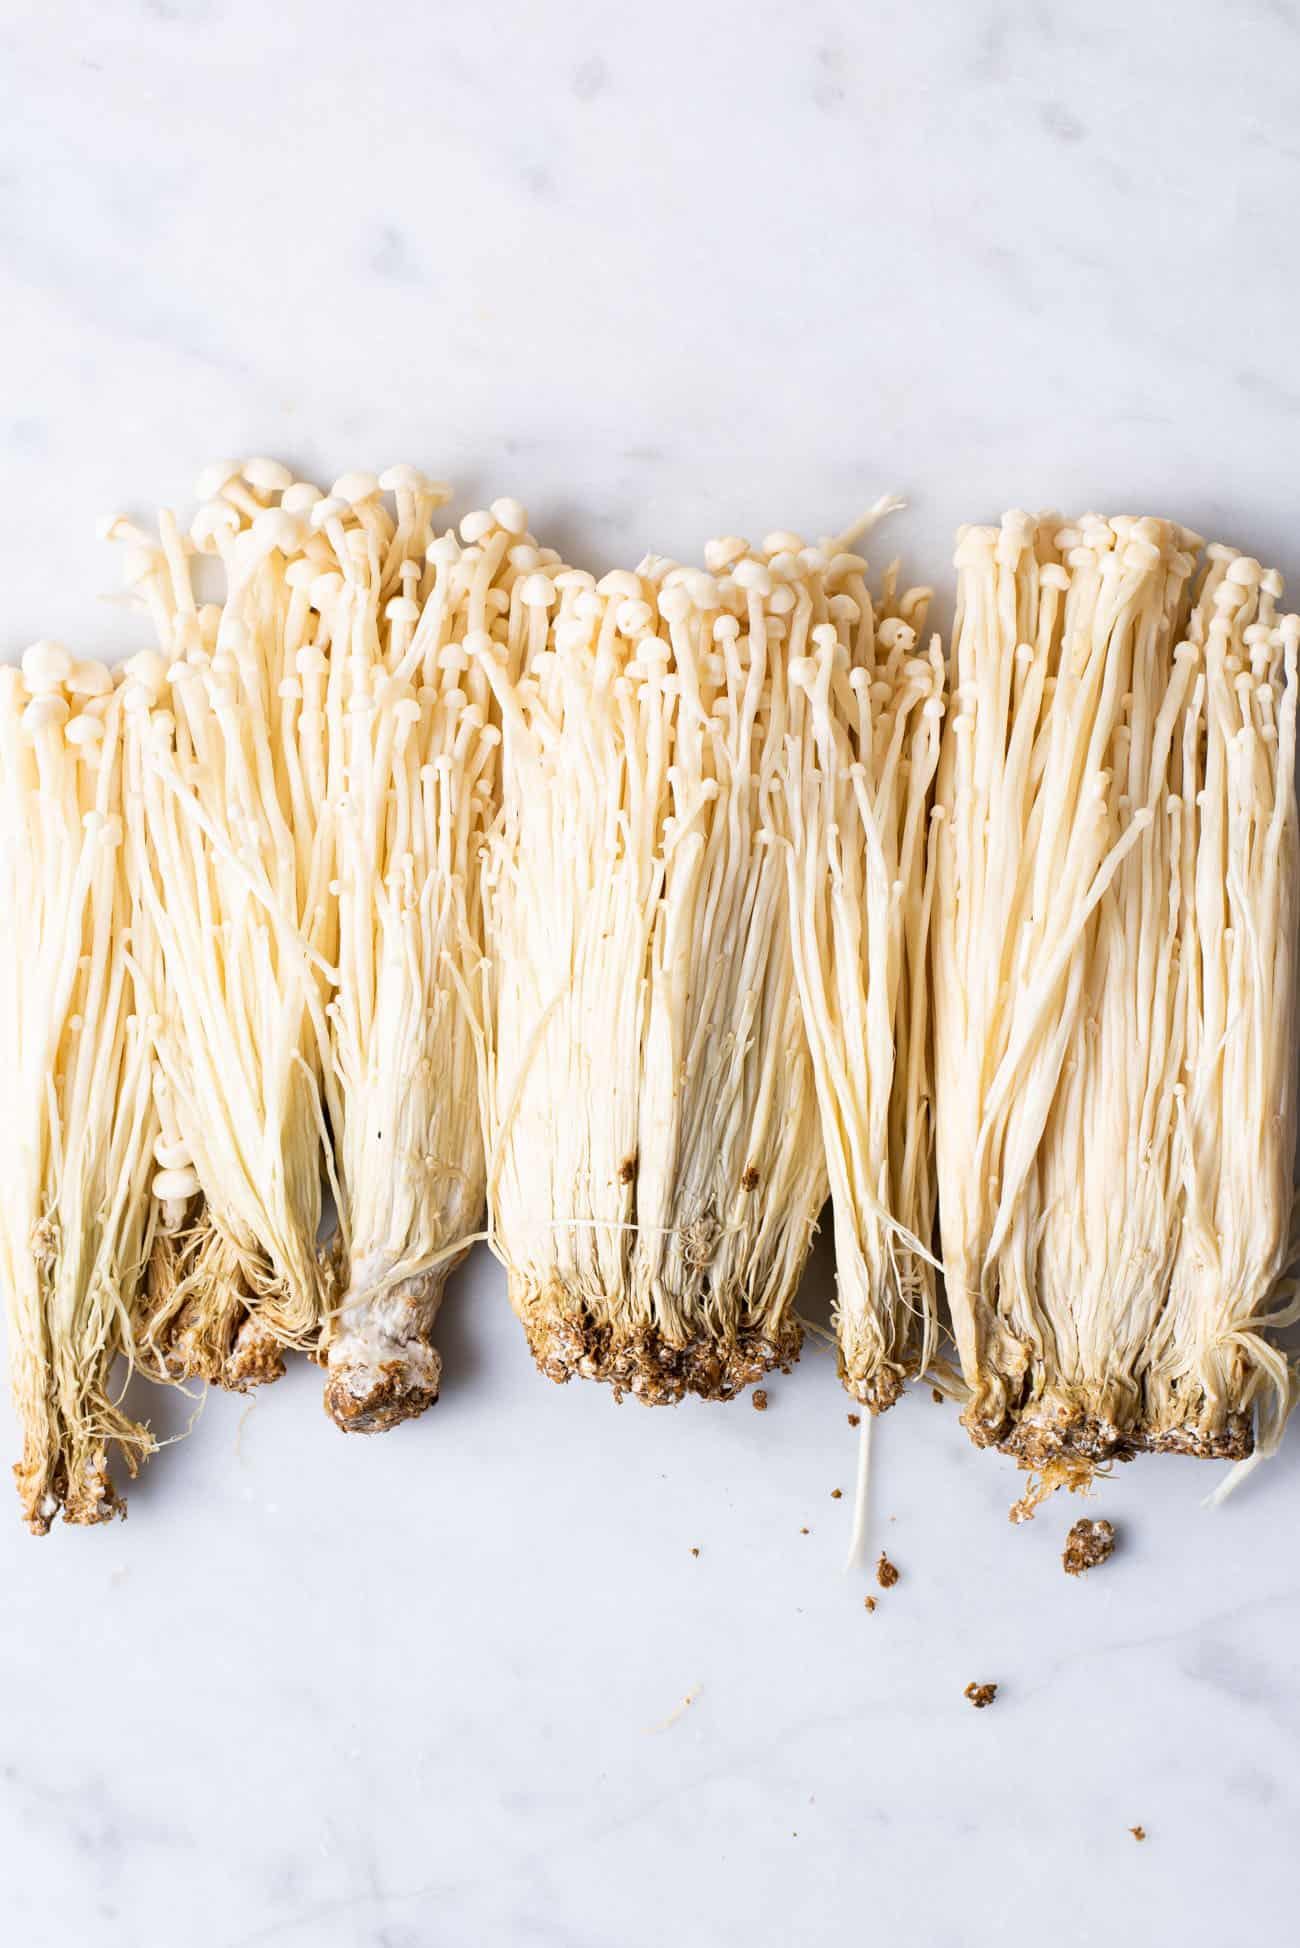 Raw enoki mushrooms on a marble table